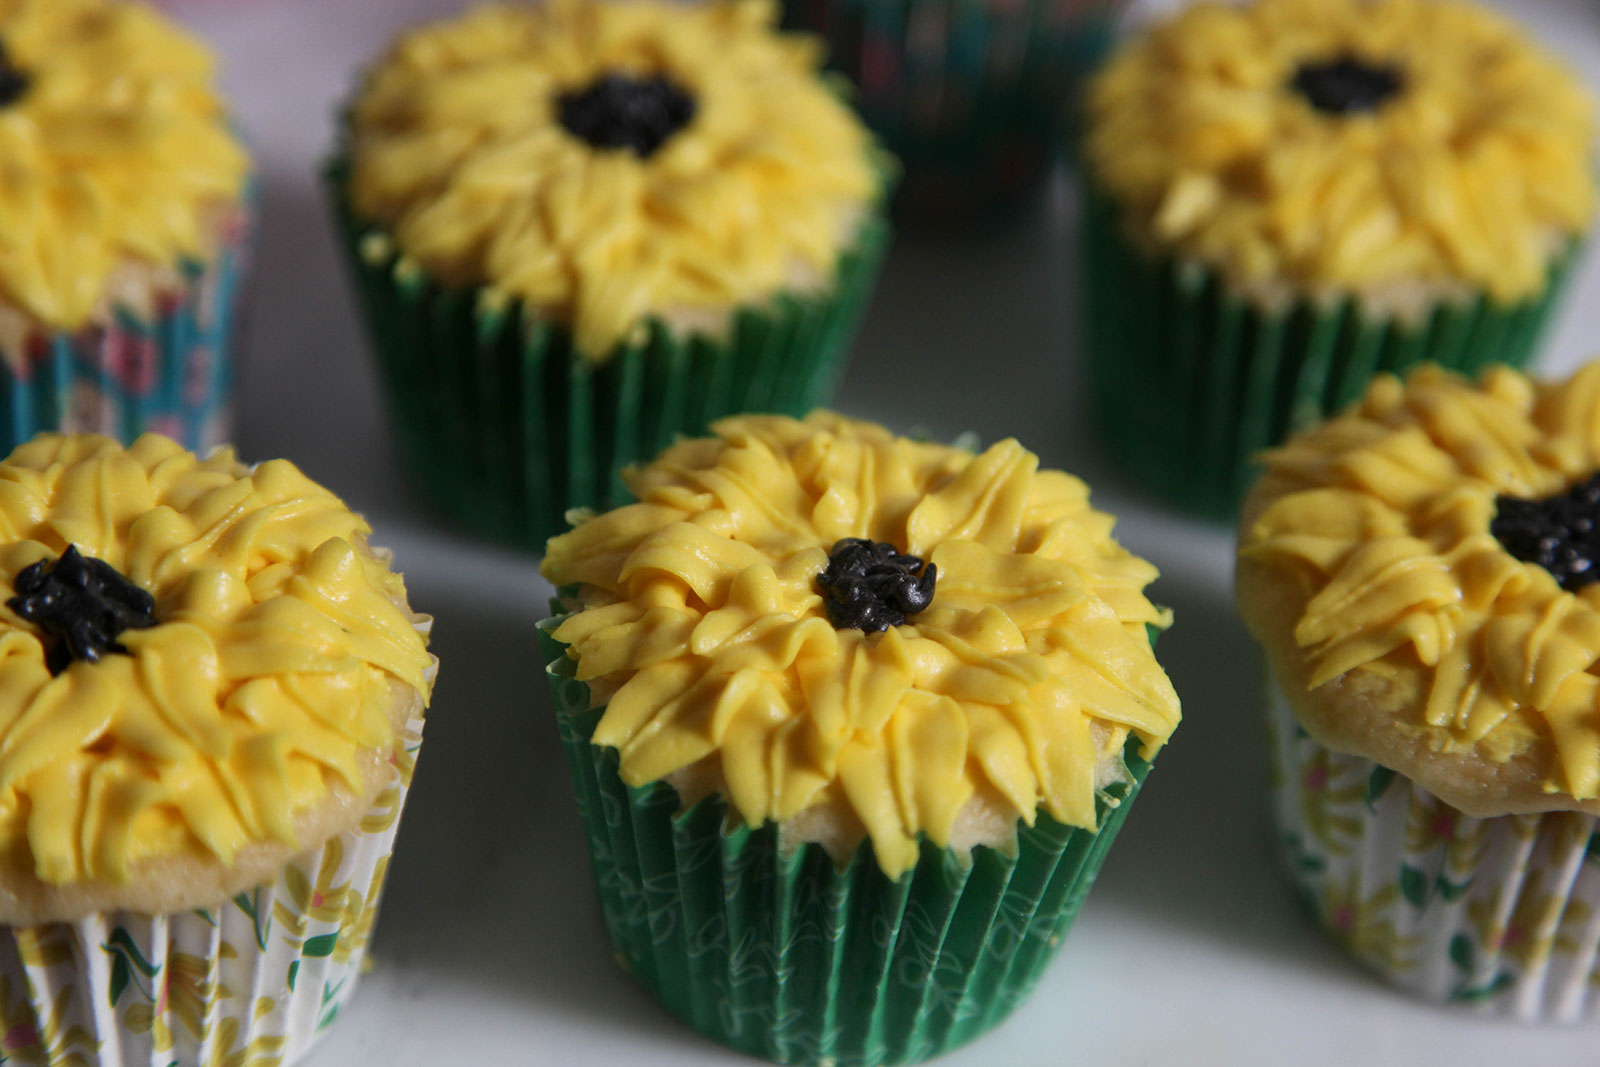 moist fluffy cupcakes with buttercream sunflower decoration